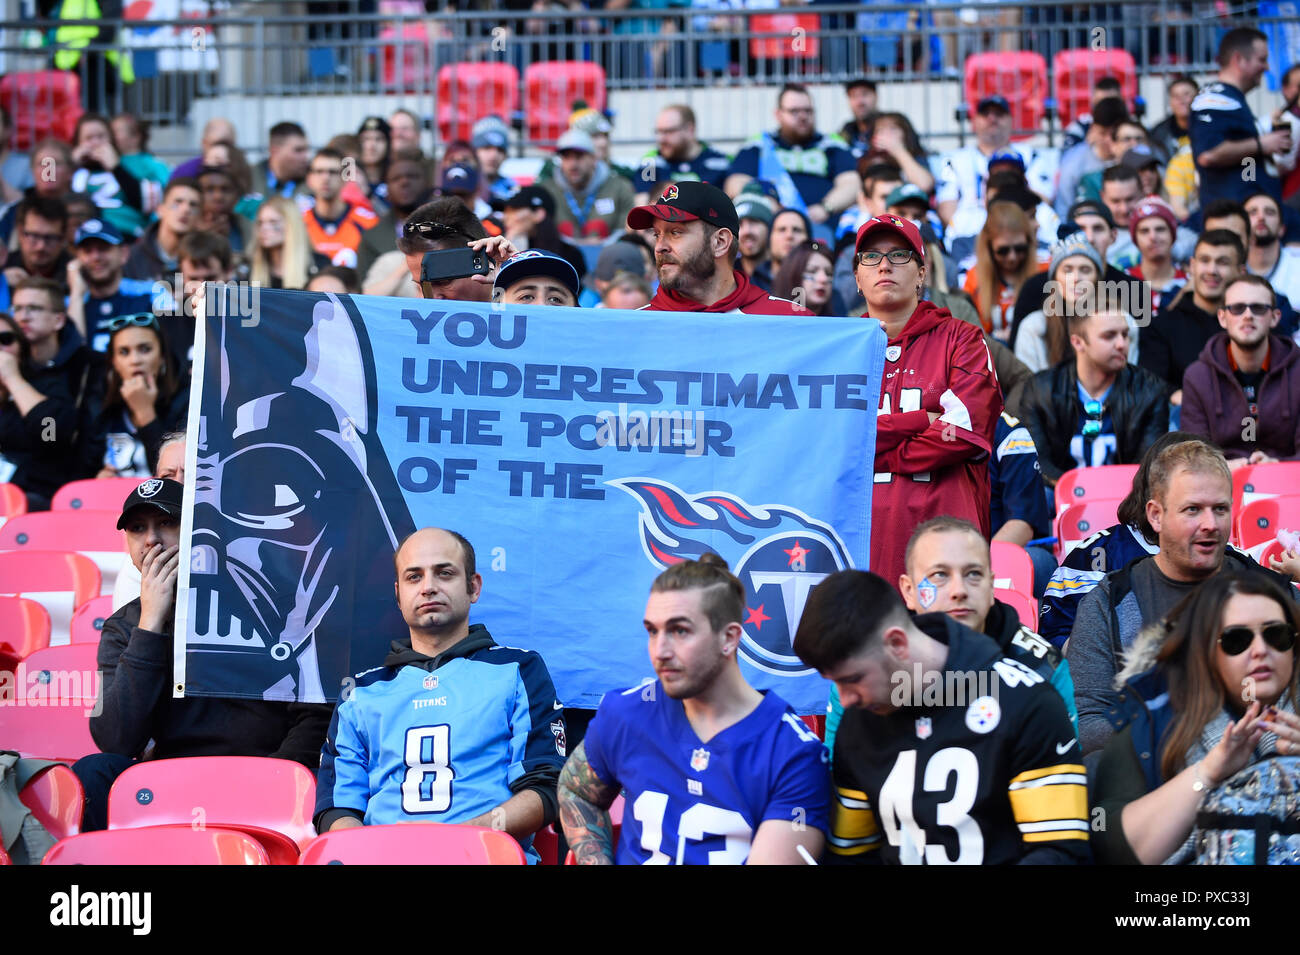 London, UK.  21 October 2018. Titans fans at the Tennessee Titans at Los Angeles Chargers NFL game at Wembley Stadium, the second of the NFL London 2018 games.  Credit: Stephen Chung / Alamy Live News - Stock Image